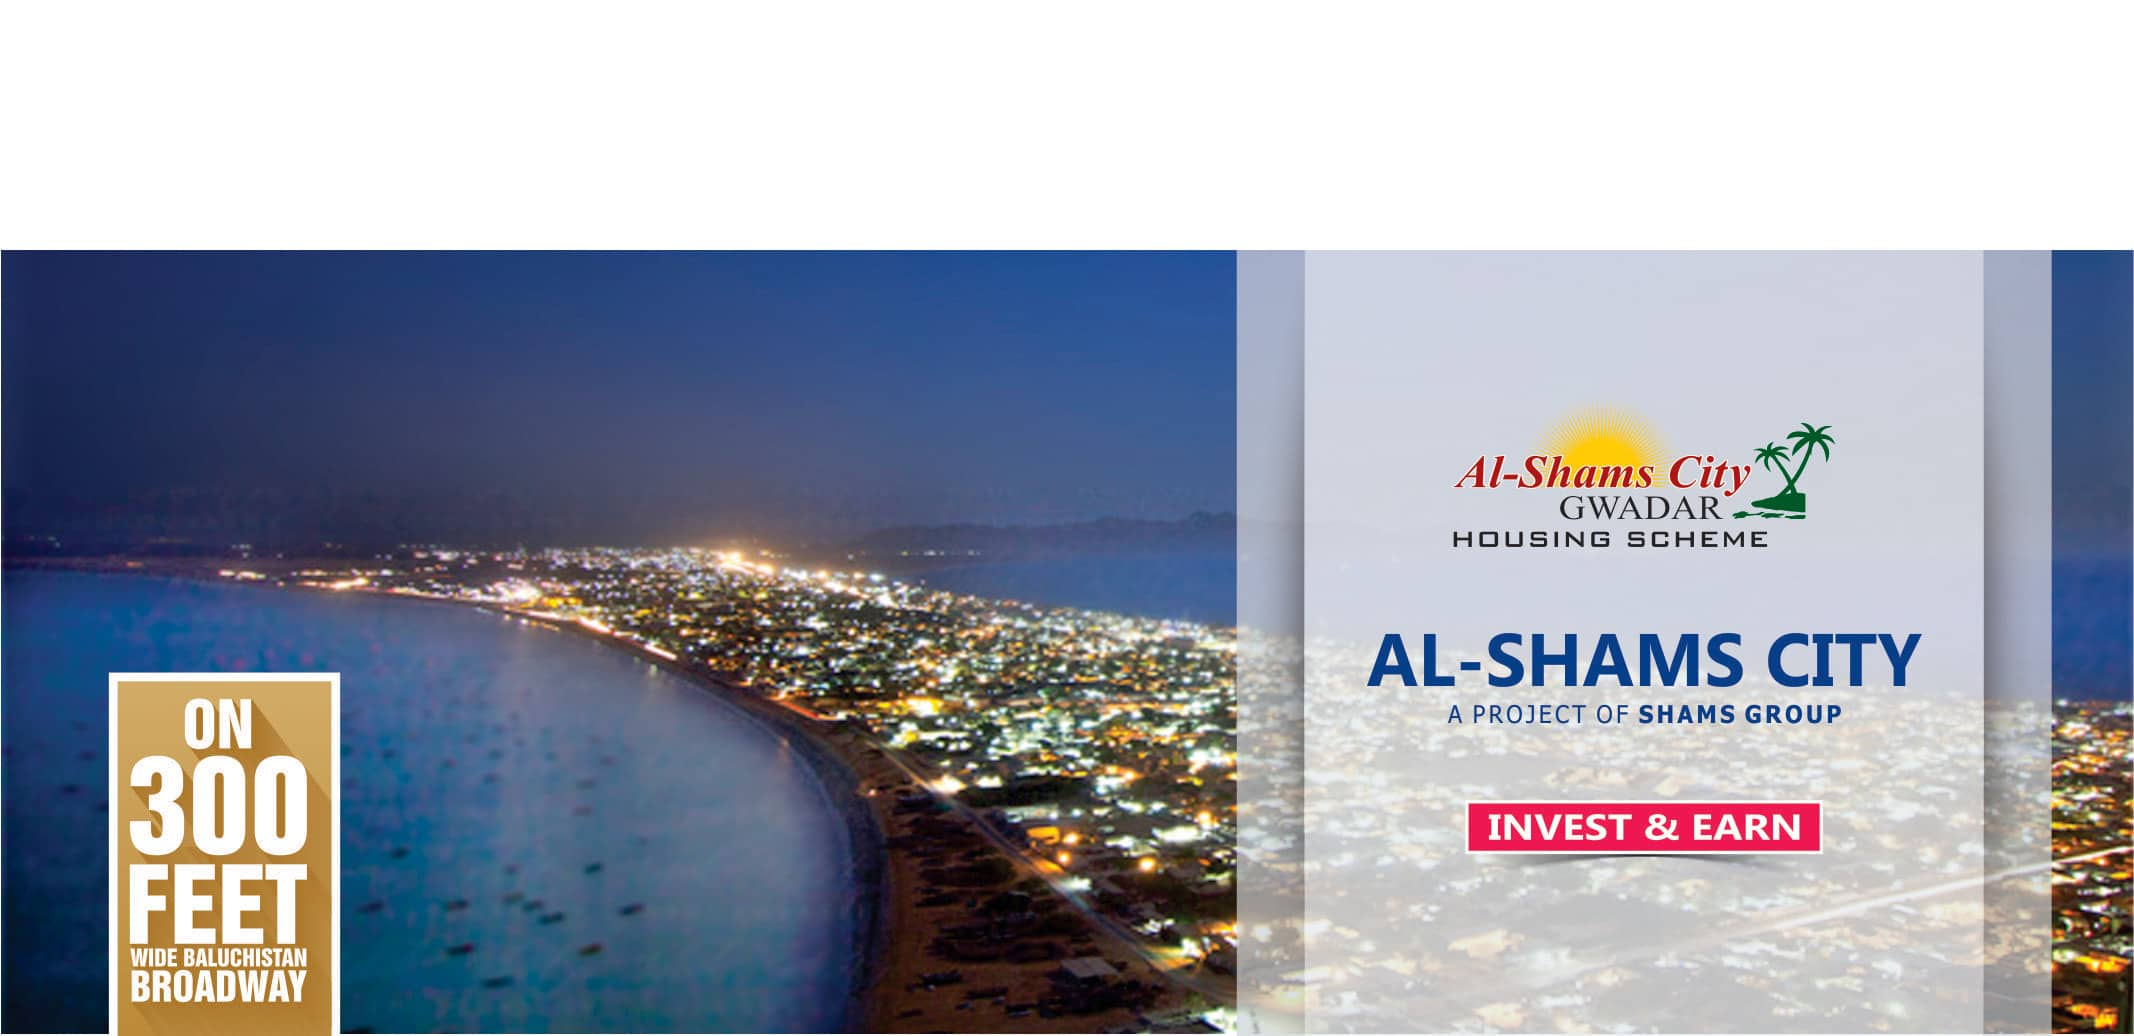 Al-Shams City Gwadar